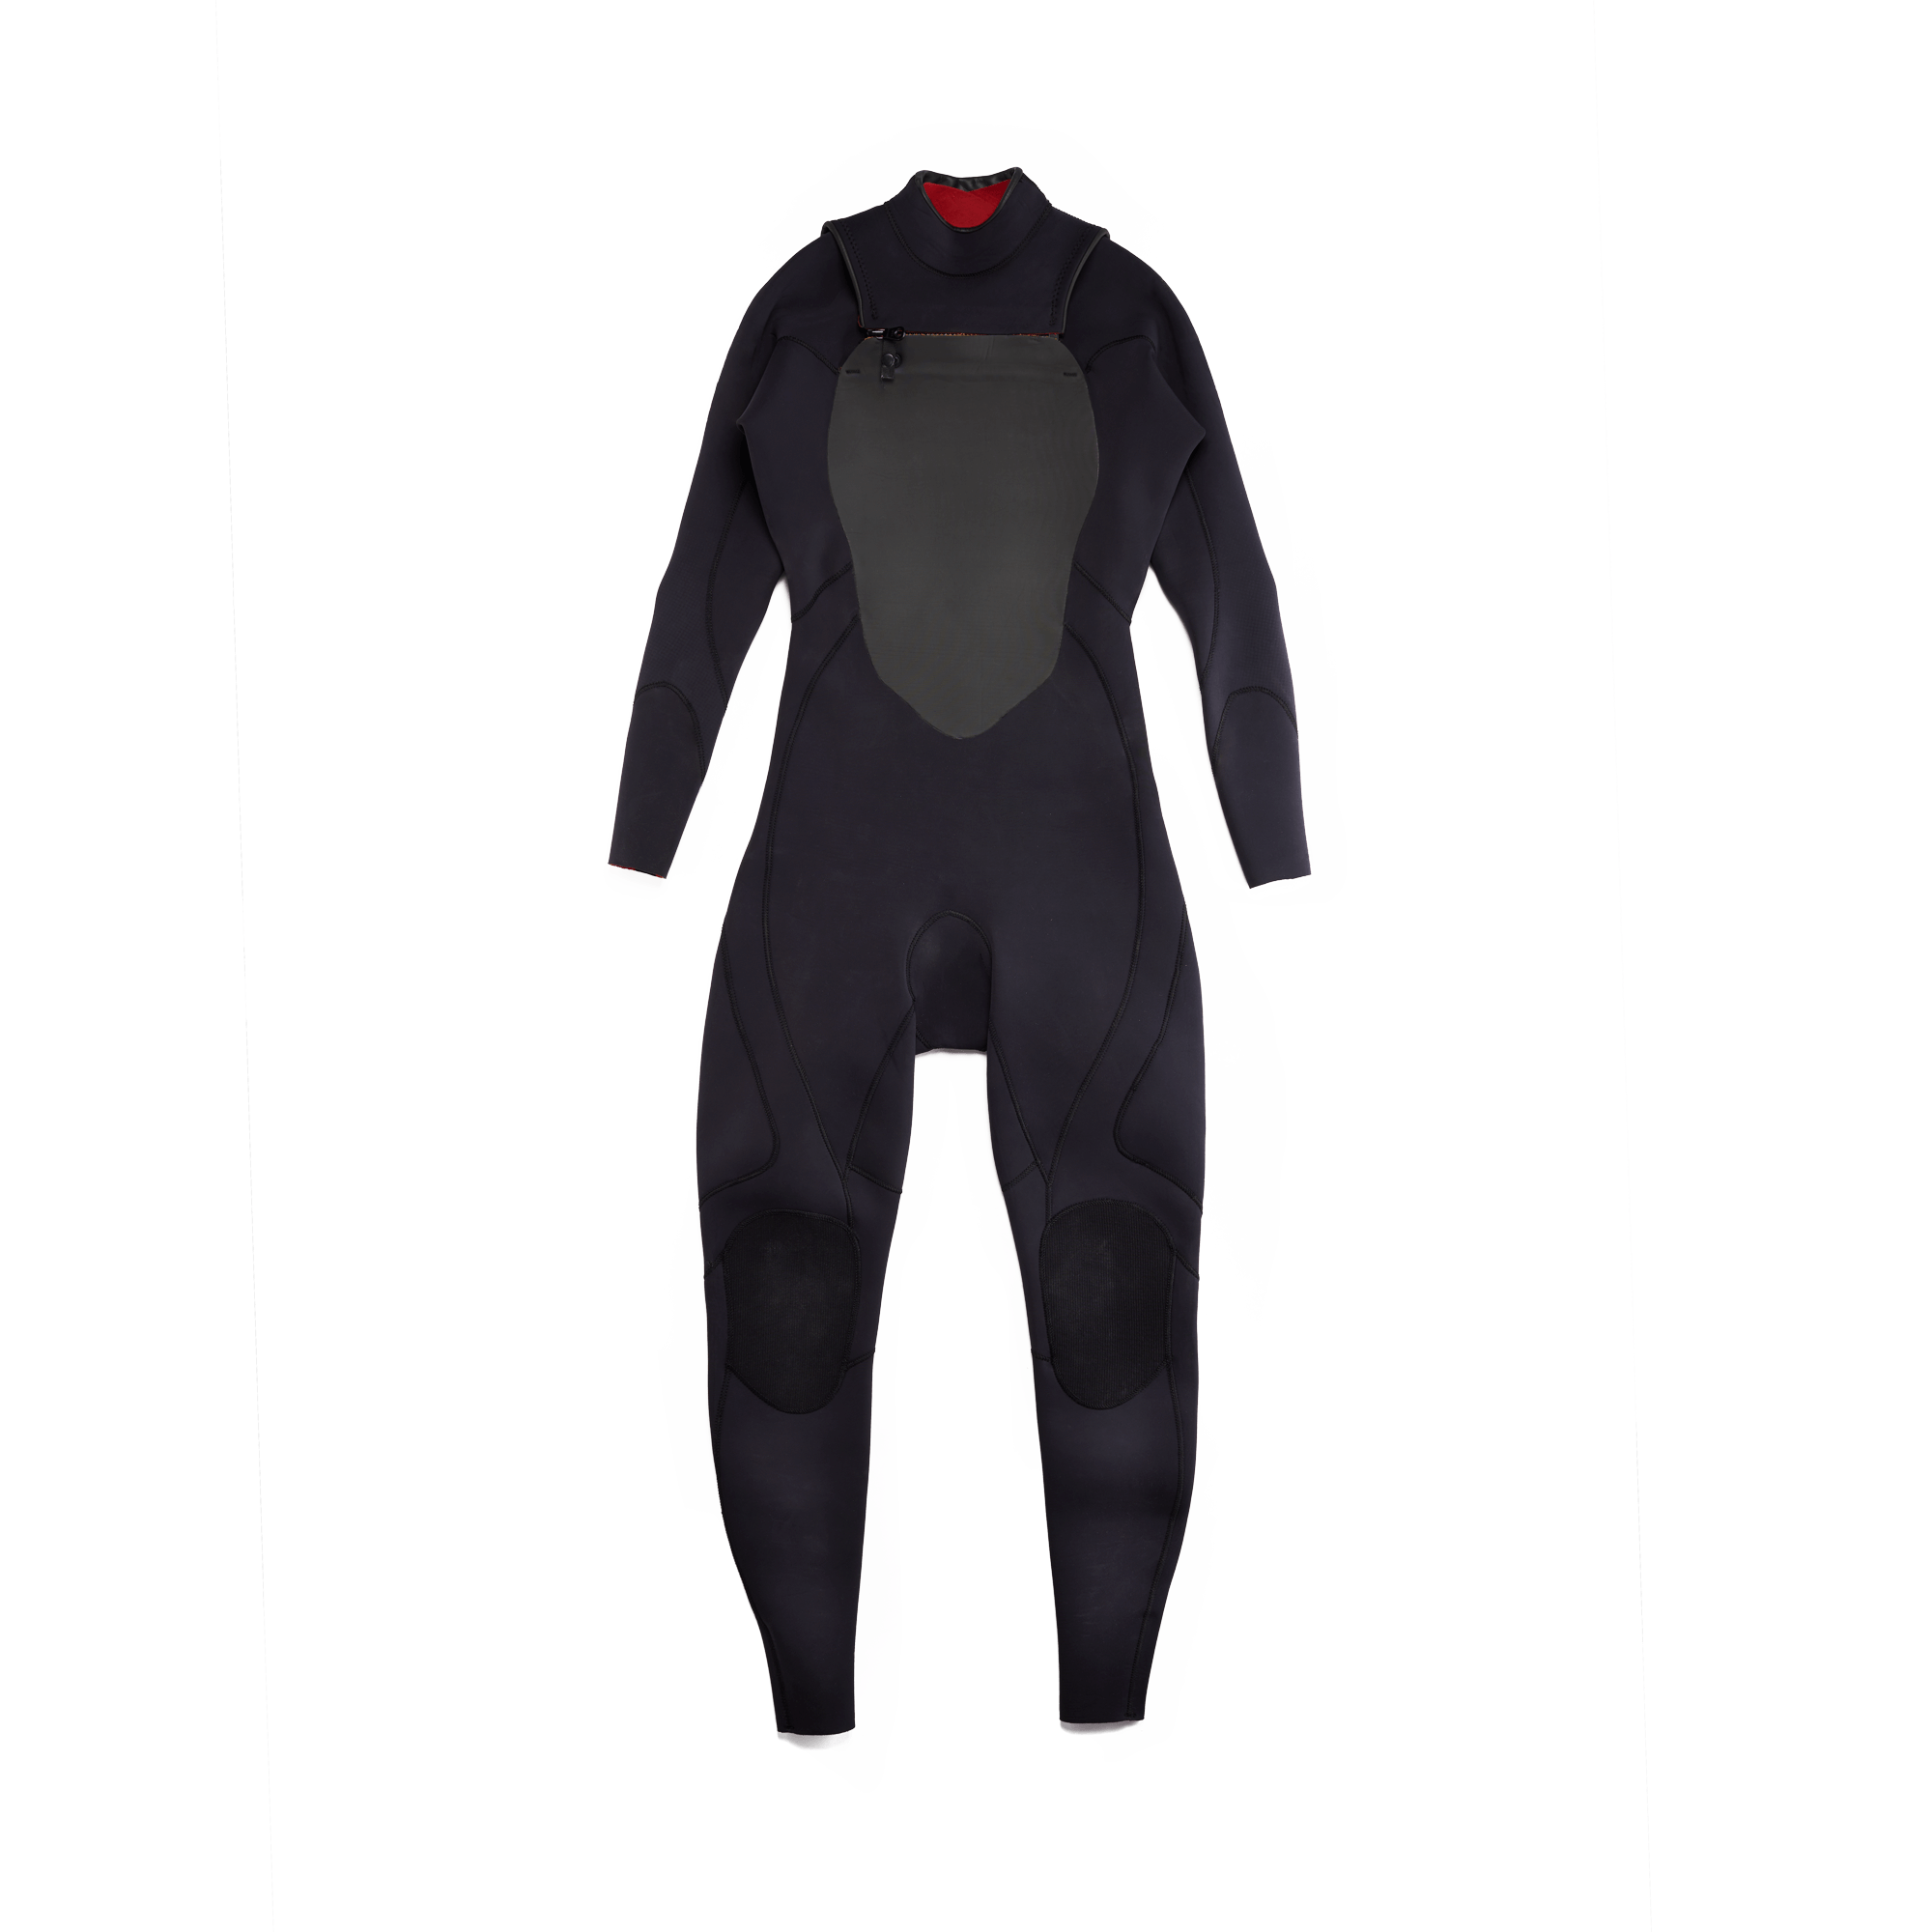 wetsuit_2000px.png